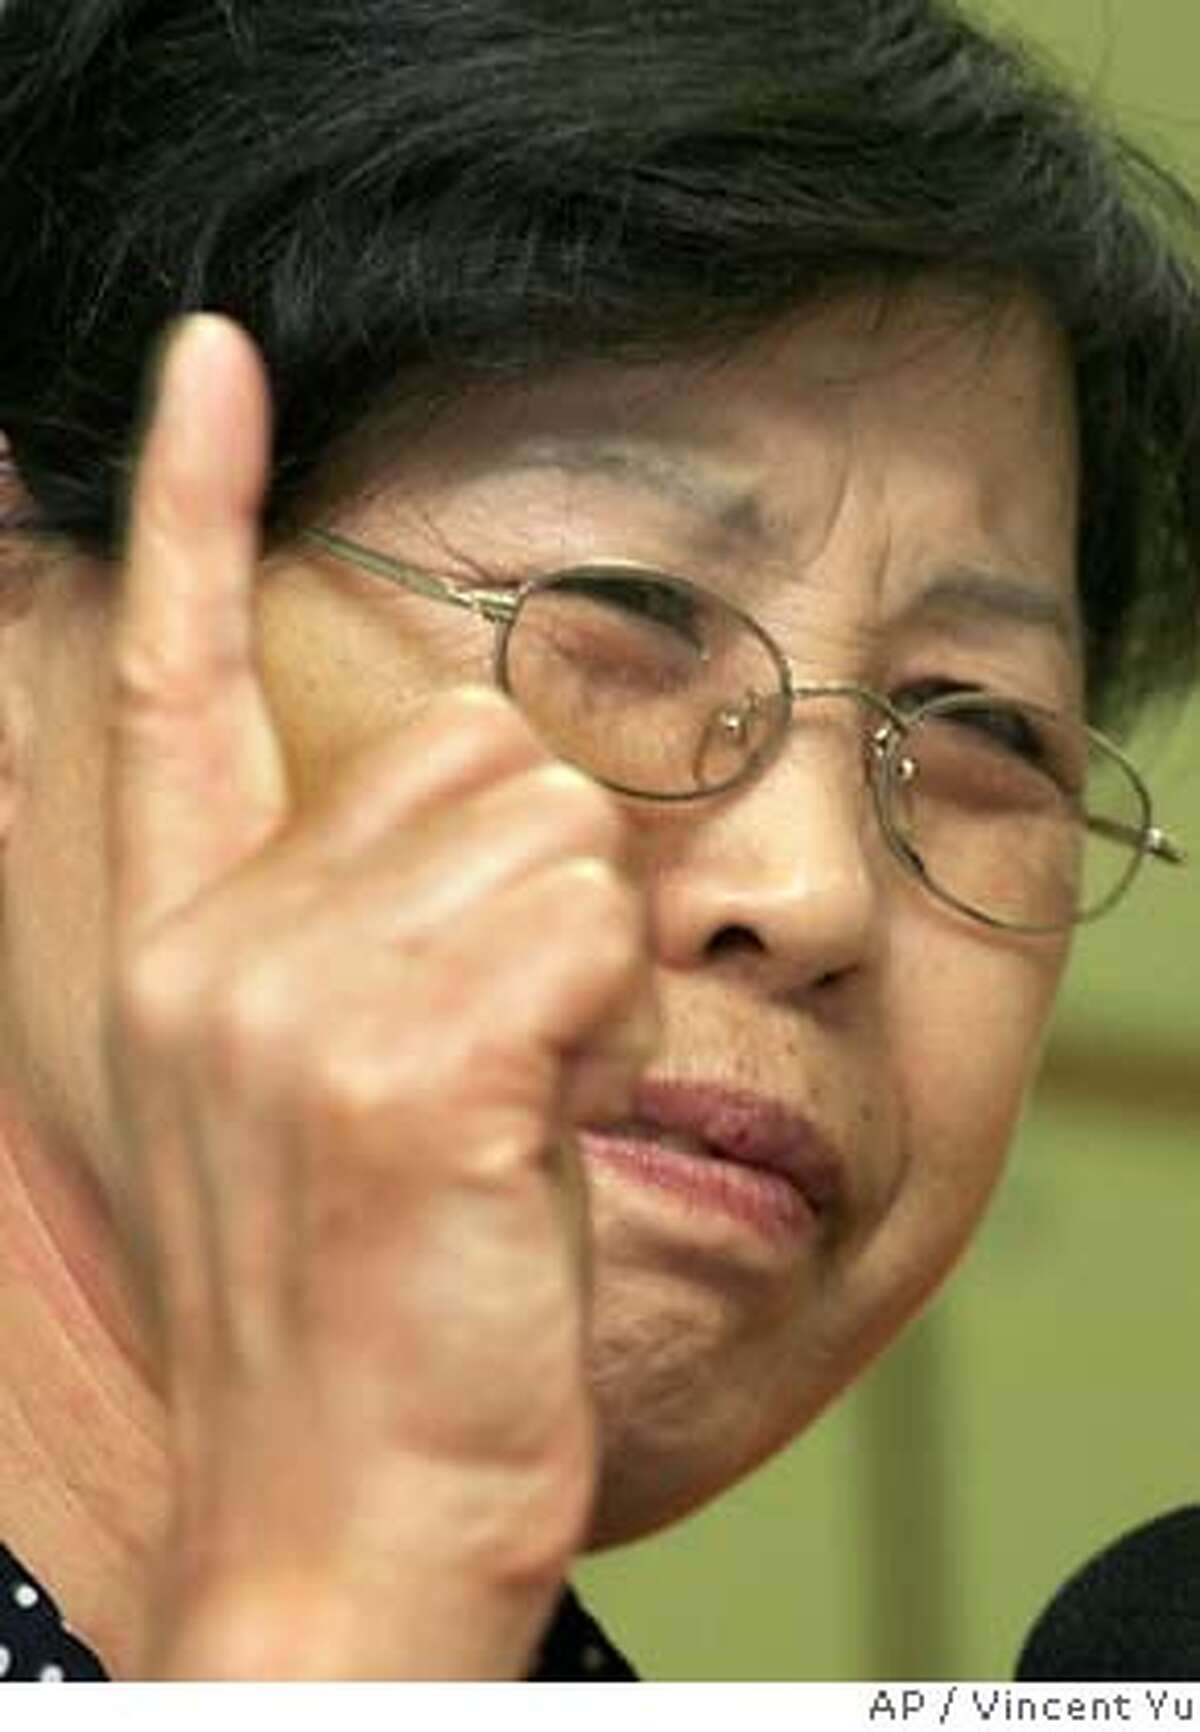 Gao Qinsheng, mother of jailed Chinese journalist Shi Tao, reacts during a news conference in Hong Kong Sunday, June 10, 2007. Shi Tao, a jailed Chinese reporter accused of leaking state secrets has joined a U.S. lawsuit claiming Yahoo Inc. helped the Chinese government convict dissidents, his mother said Sunday. Shi Tao, who was sentenced in 2005 to 10 years in prison, is seeking compensation from the Sunnyvale, California-based Internet company because Yahoo Hong Kong and Yahoo China were accused of providing information to the Chinese authorities that led to his arrest. (AP Photo/Vincent Yu) Ran on: 06-12-2007 Gao Qingsheng, mother of jailed journalist Shi Tao, who has been accused of leaking state secrets in China, has joined a lawsuit against Yahoo Inc.